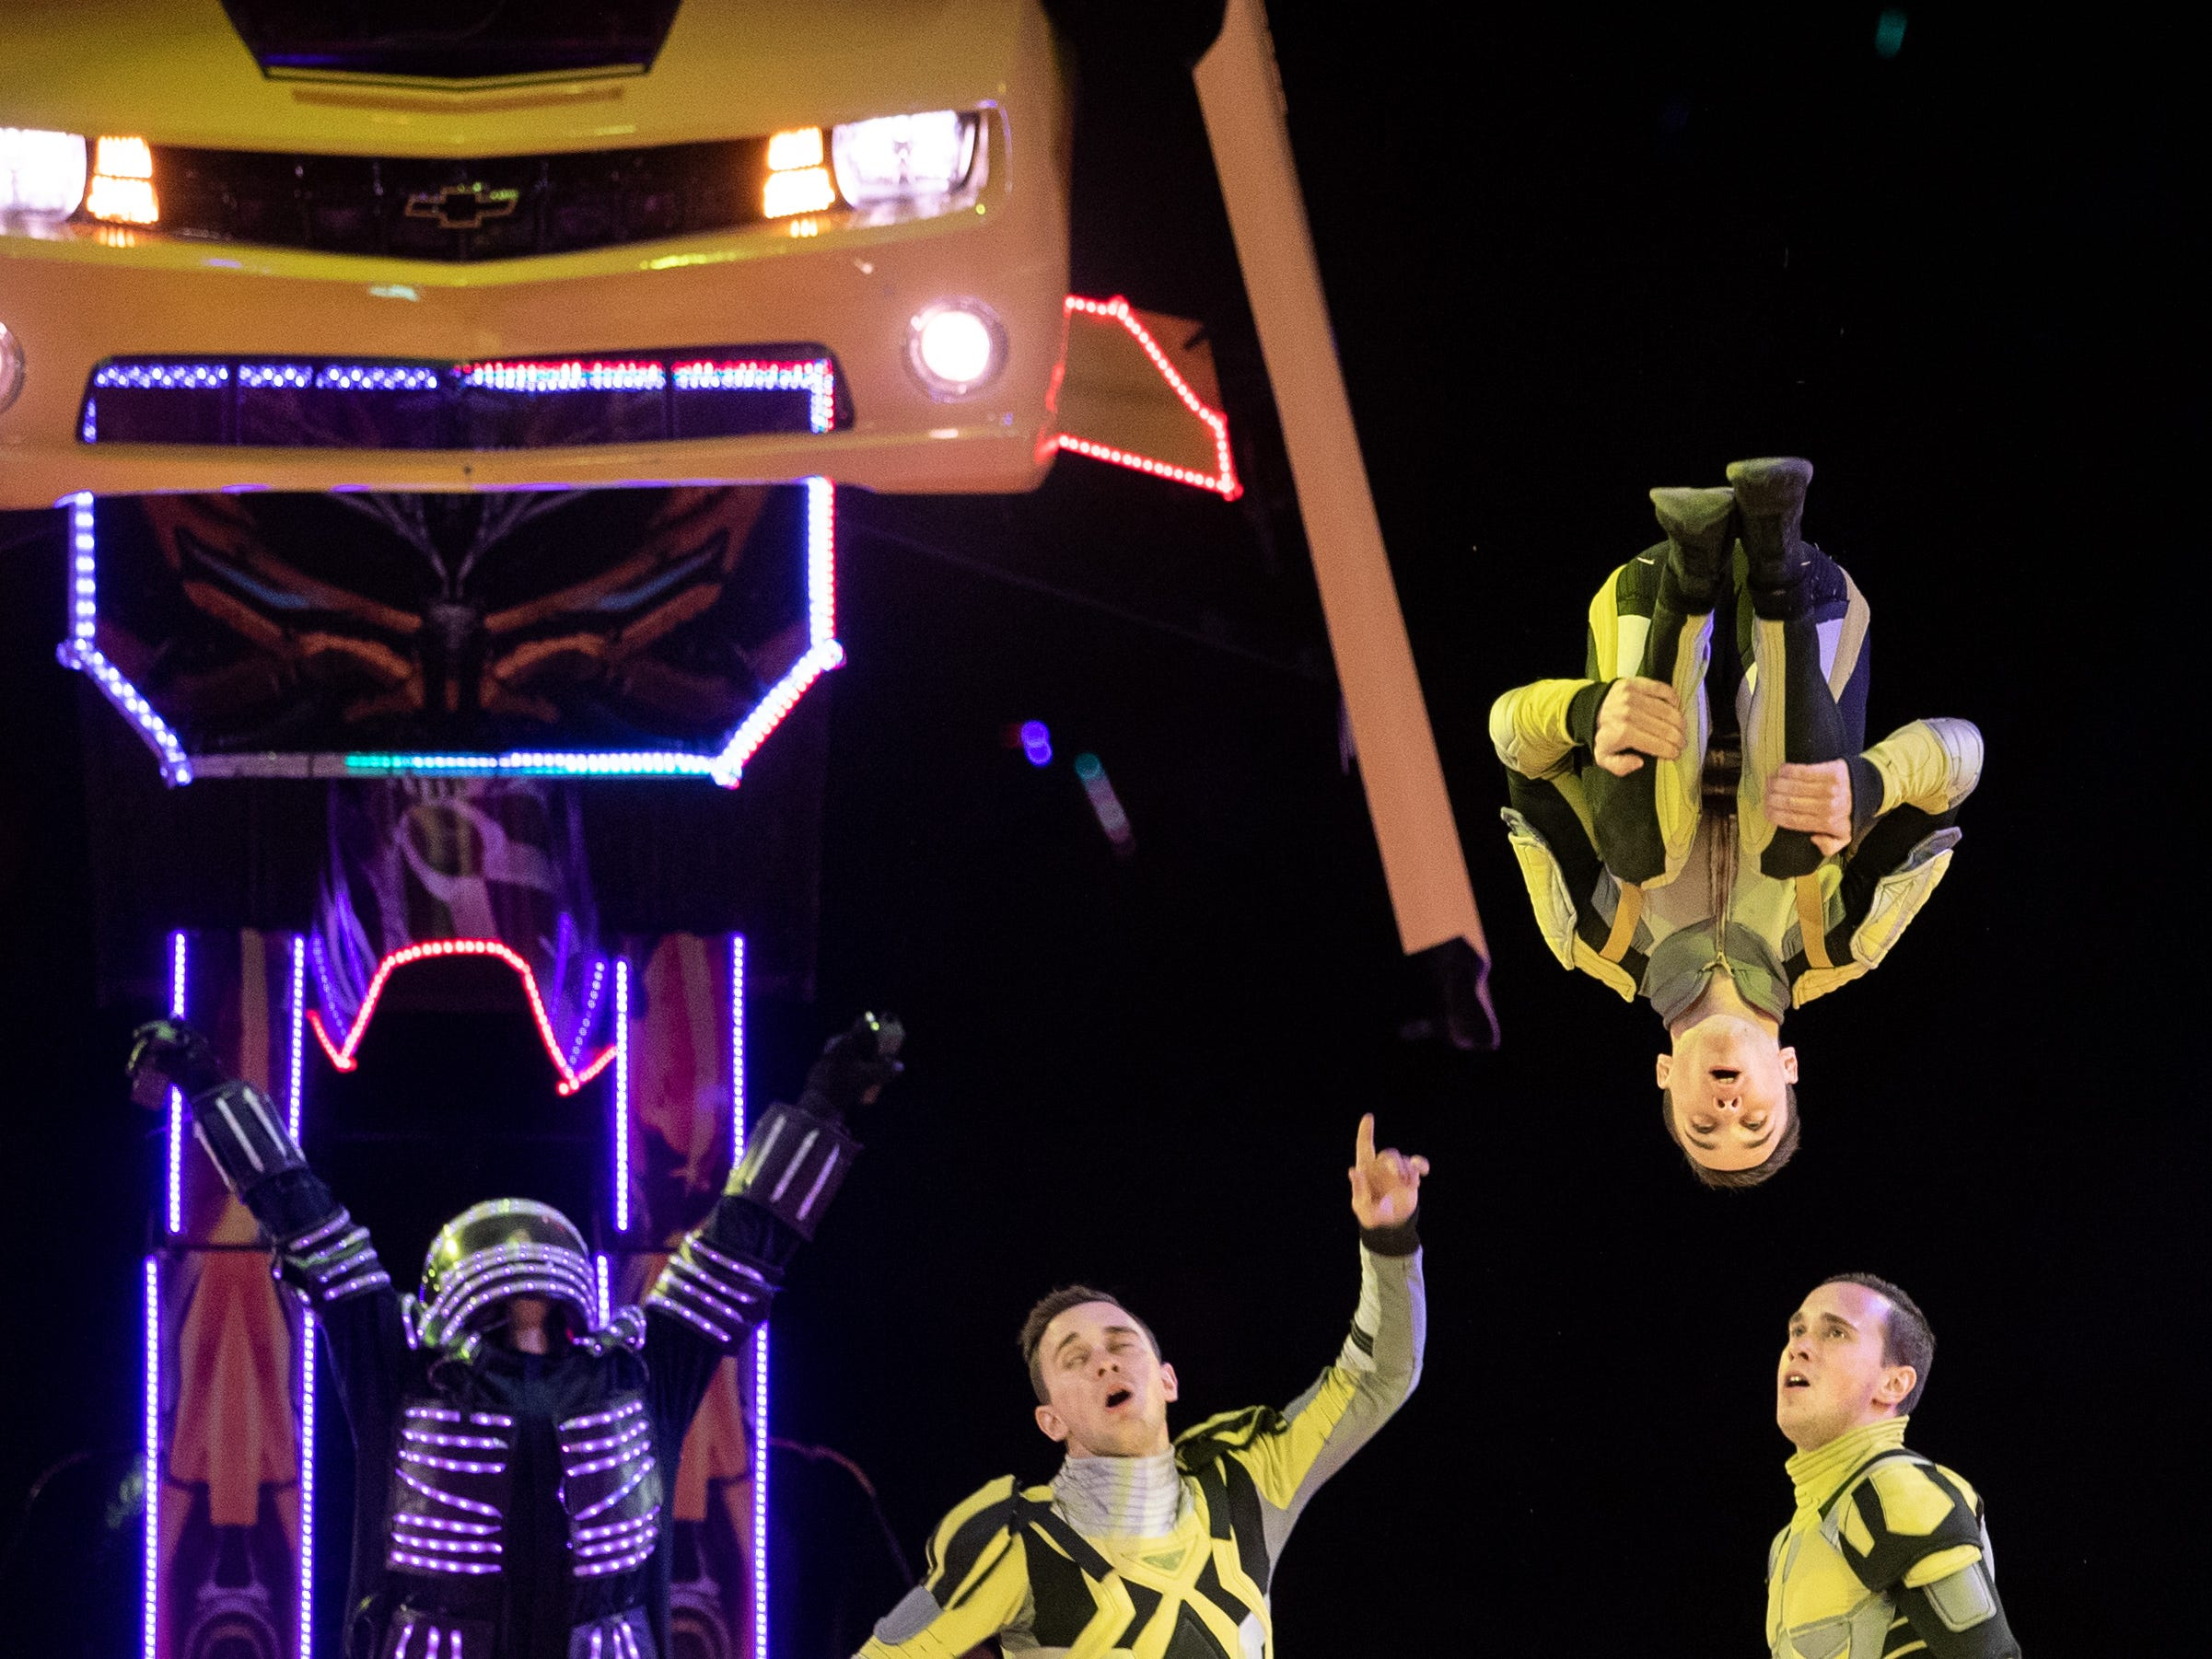 Floating like a bumblebee, a performer flips high in the air as Bumblebee, the Transformer, stands tall in the background, Saturday, Feb. 9, 2019 in Louisville, Kentucky.